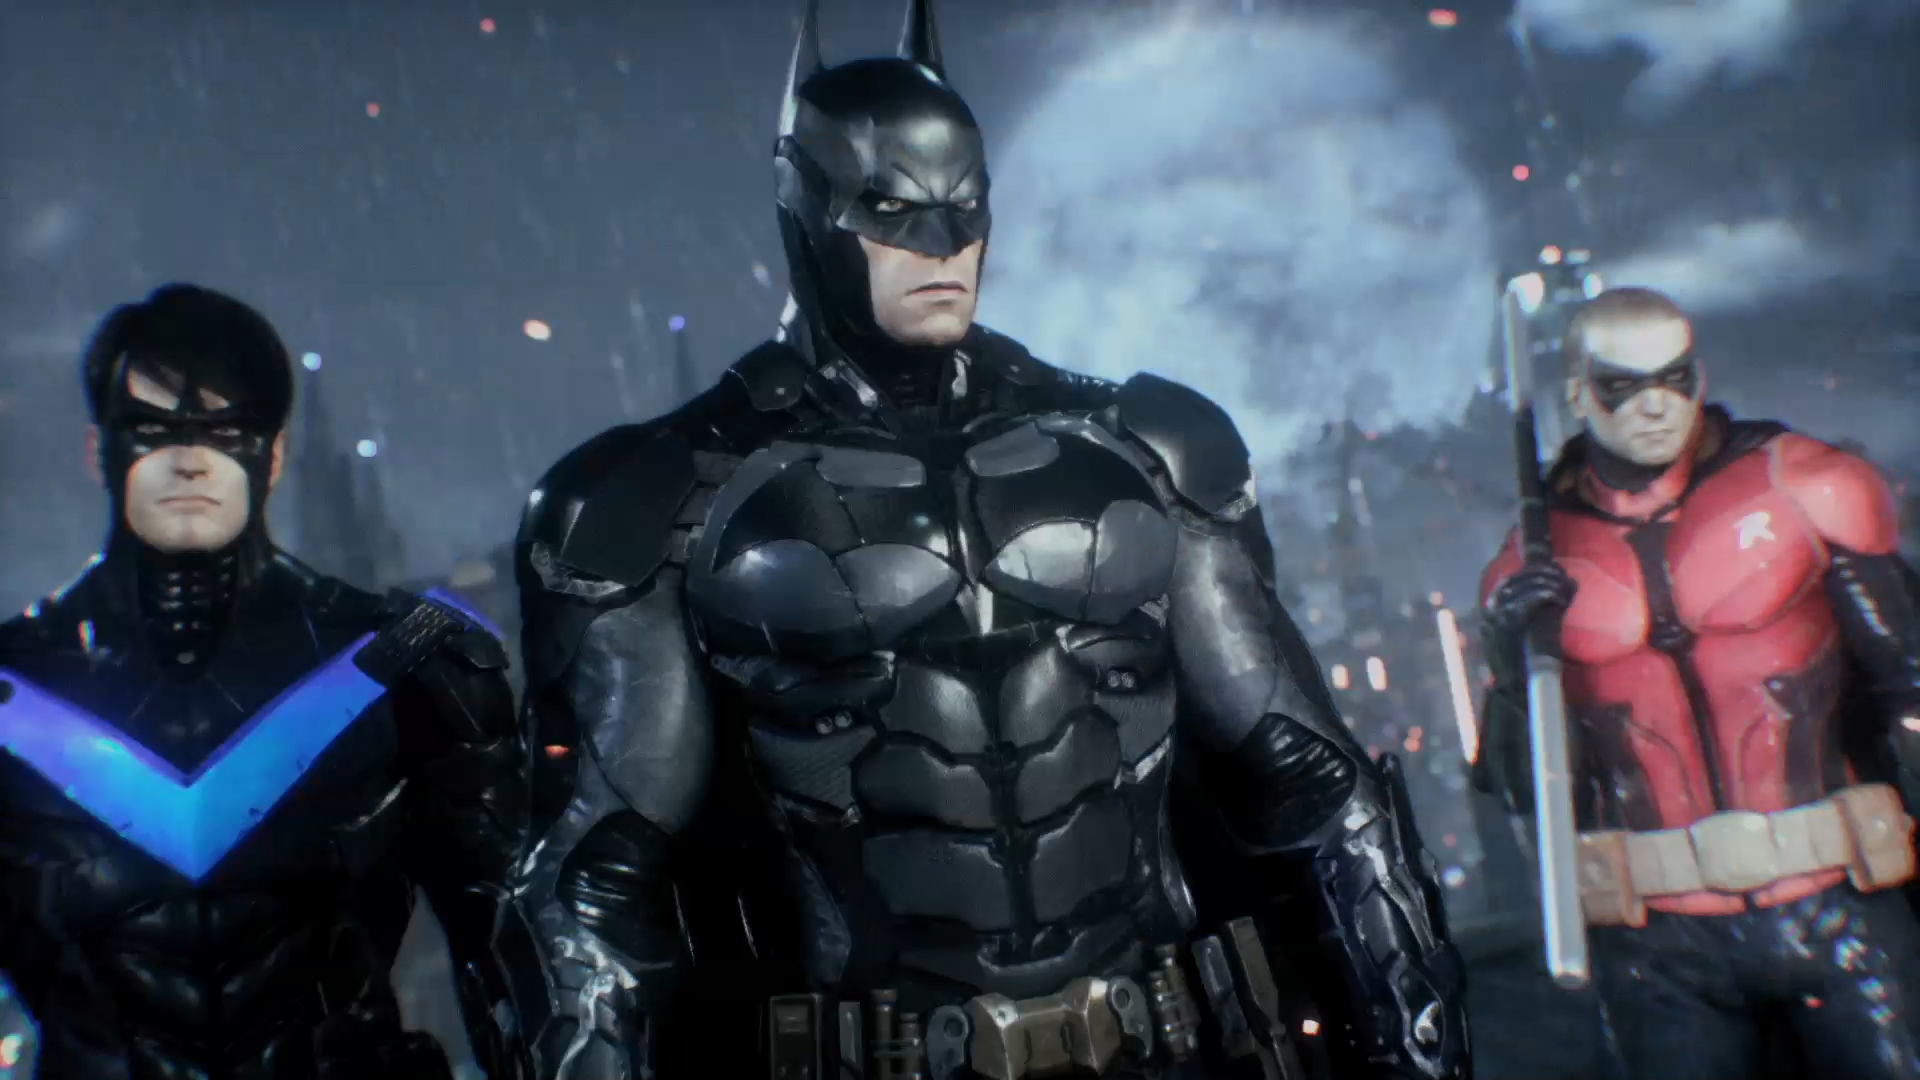 Batman, Nightwing and Robin in 'Batman: Arkham Knight'